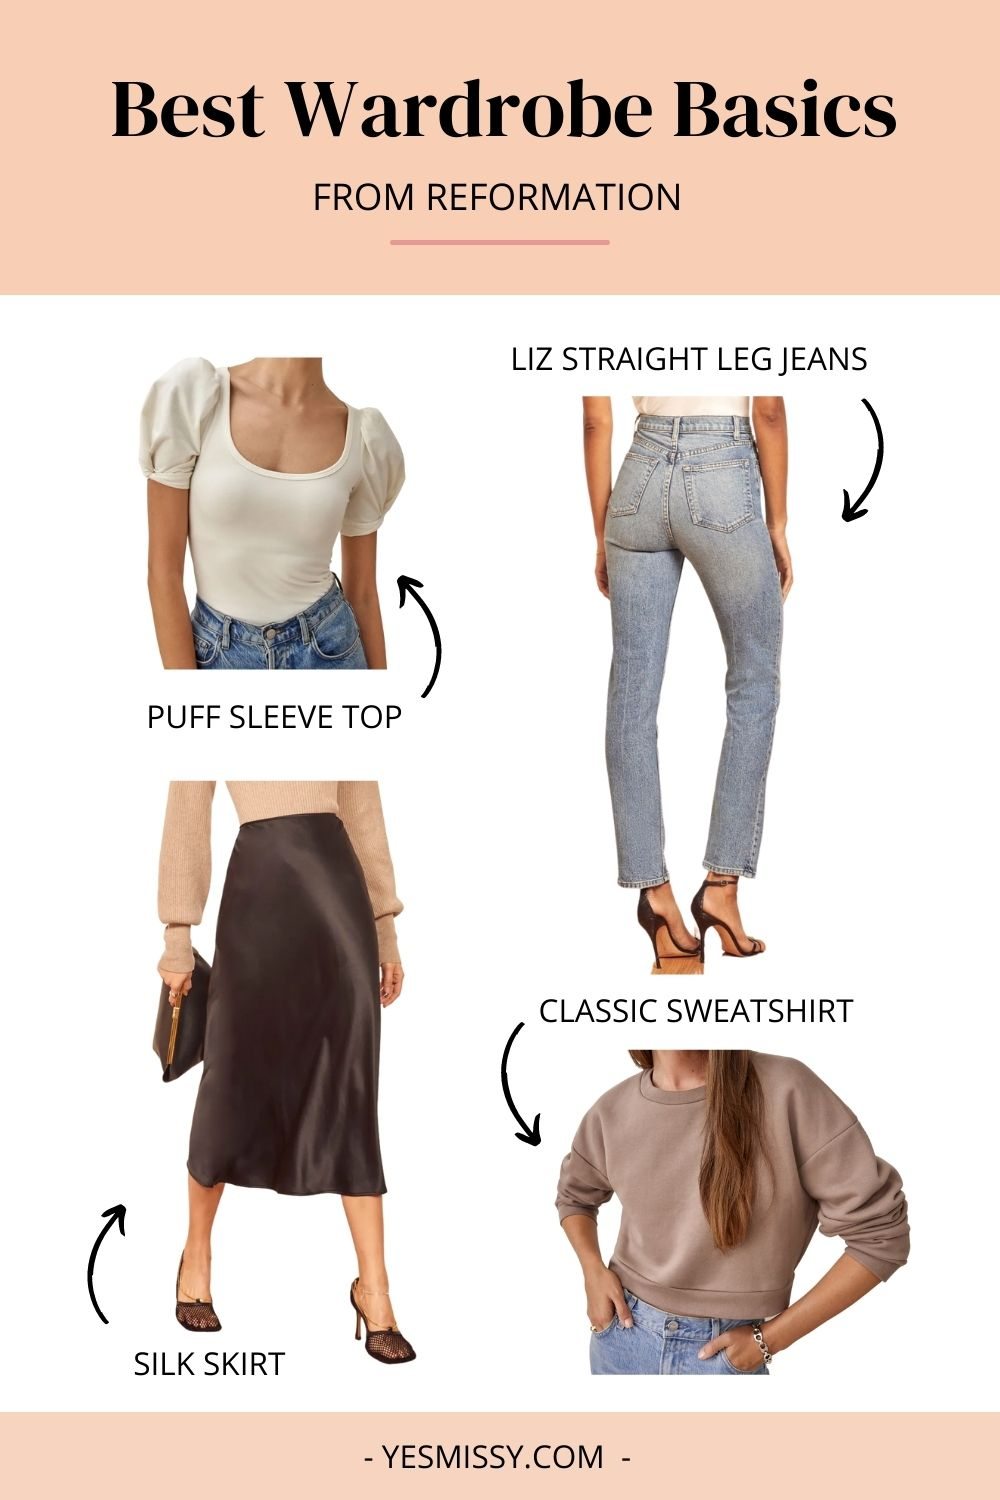 Reformation is a great place to shop the best basics for women like jeans, tops, skirts, and sweats.